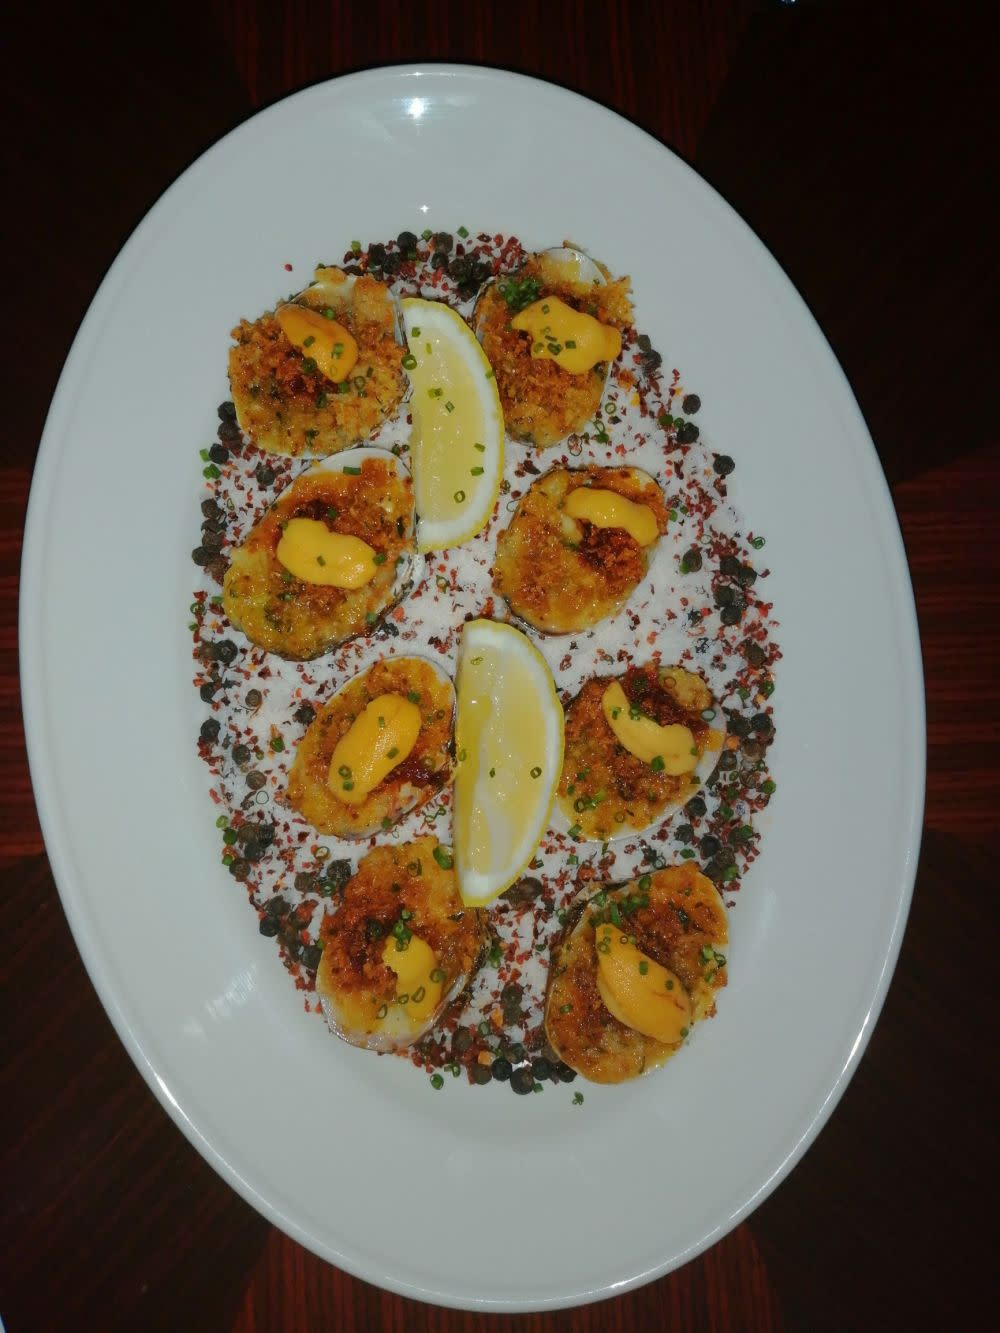 Baked cherrystone clams